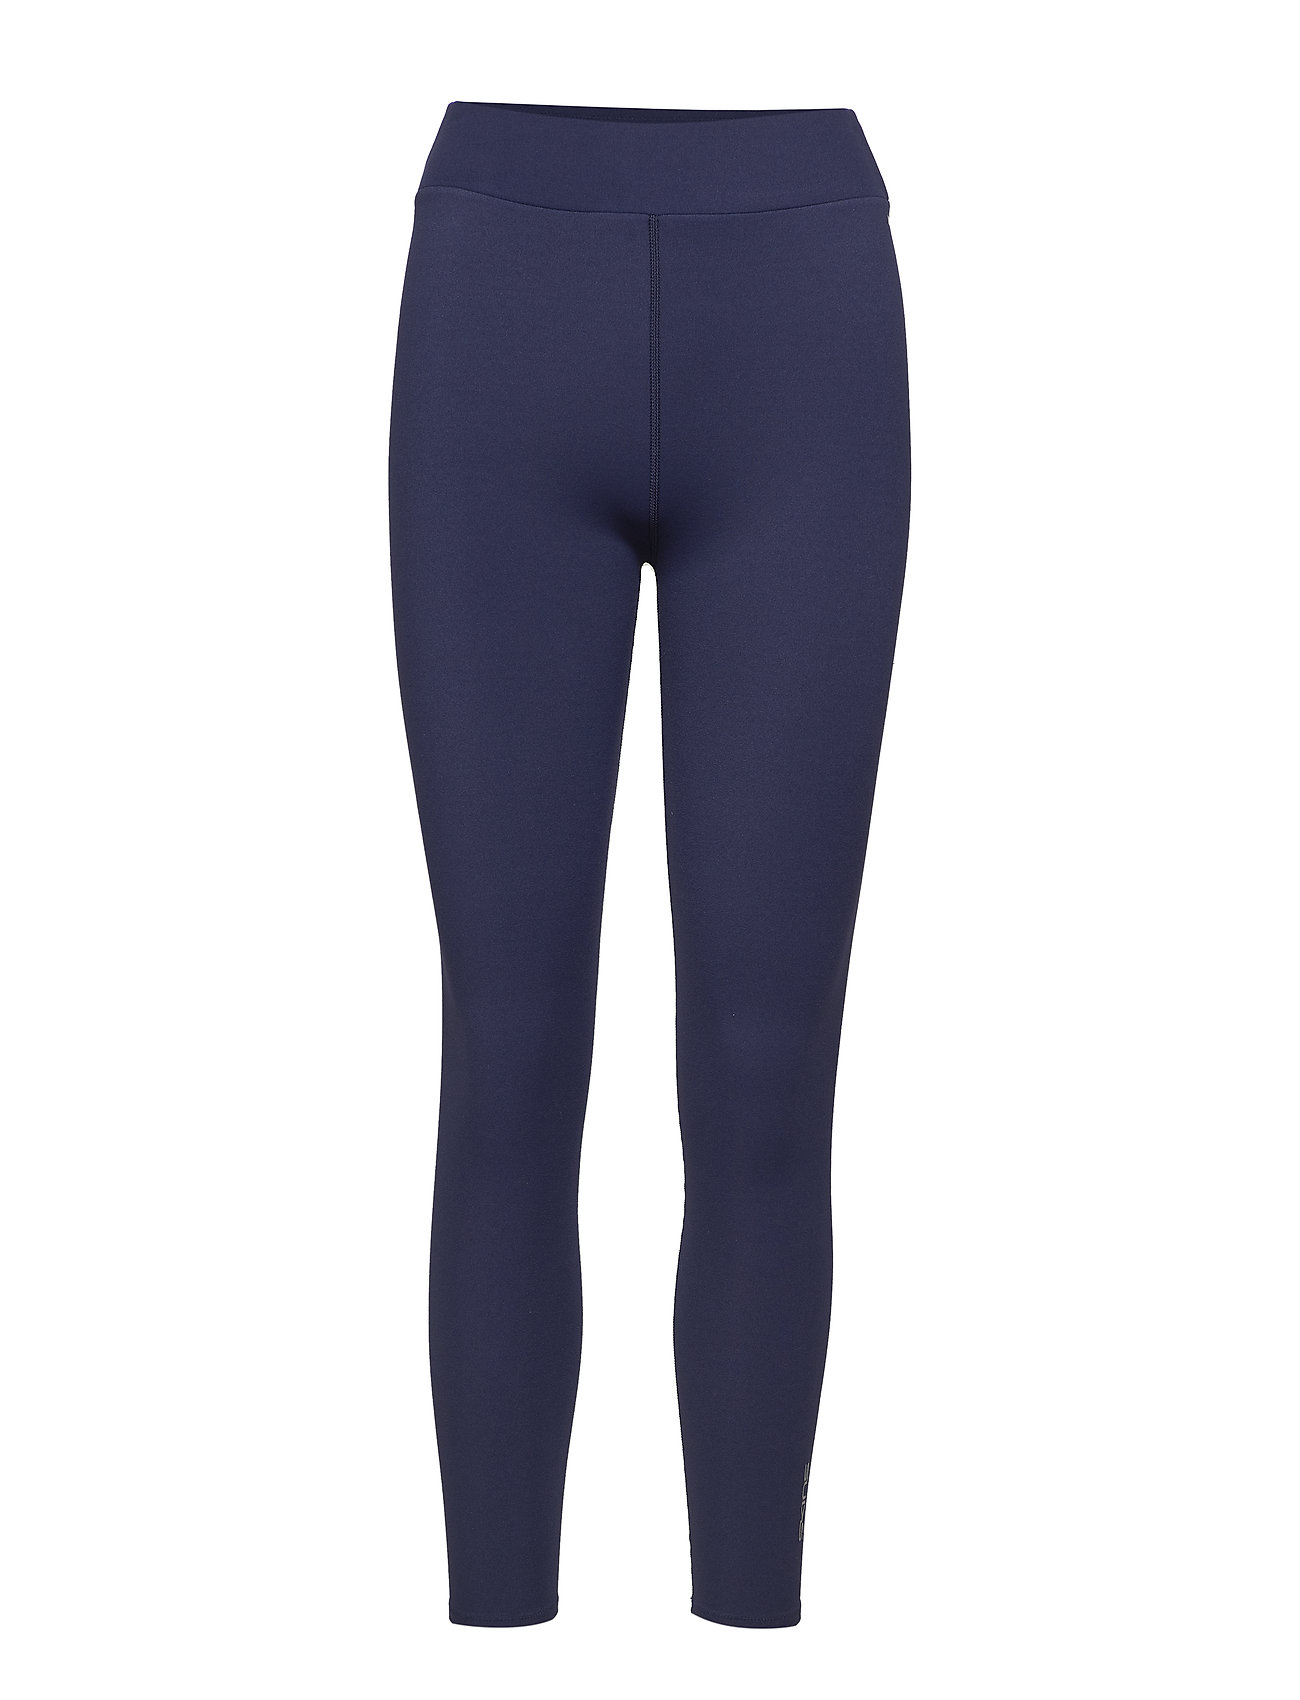 BlueSkins Soft Dnamic Tights 7 8 Womens Skyscrapernavy PZiXku